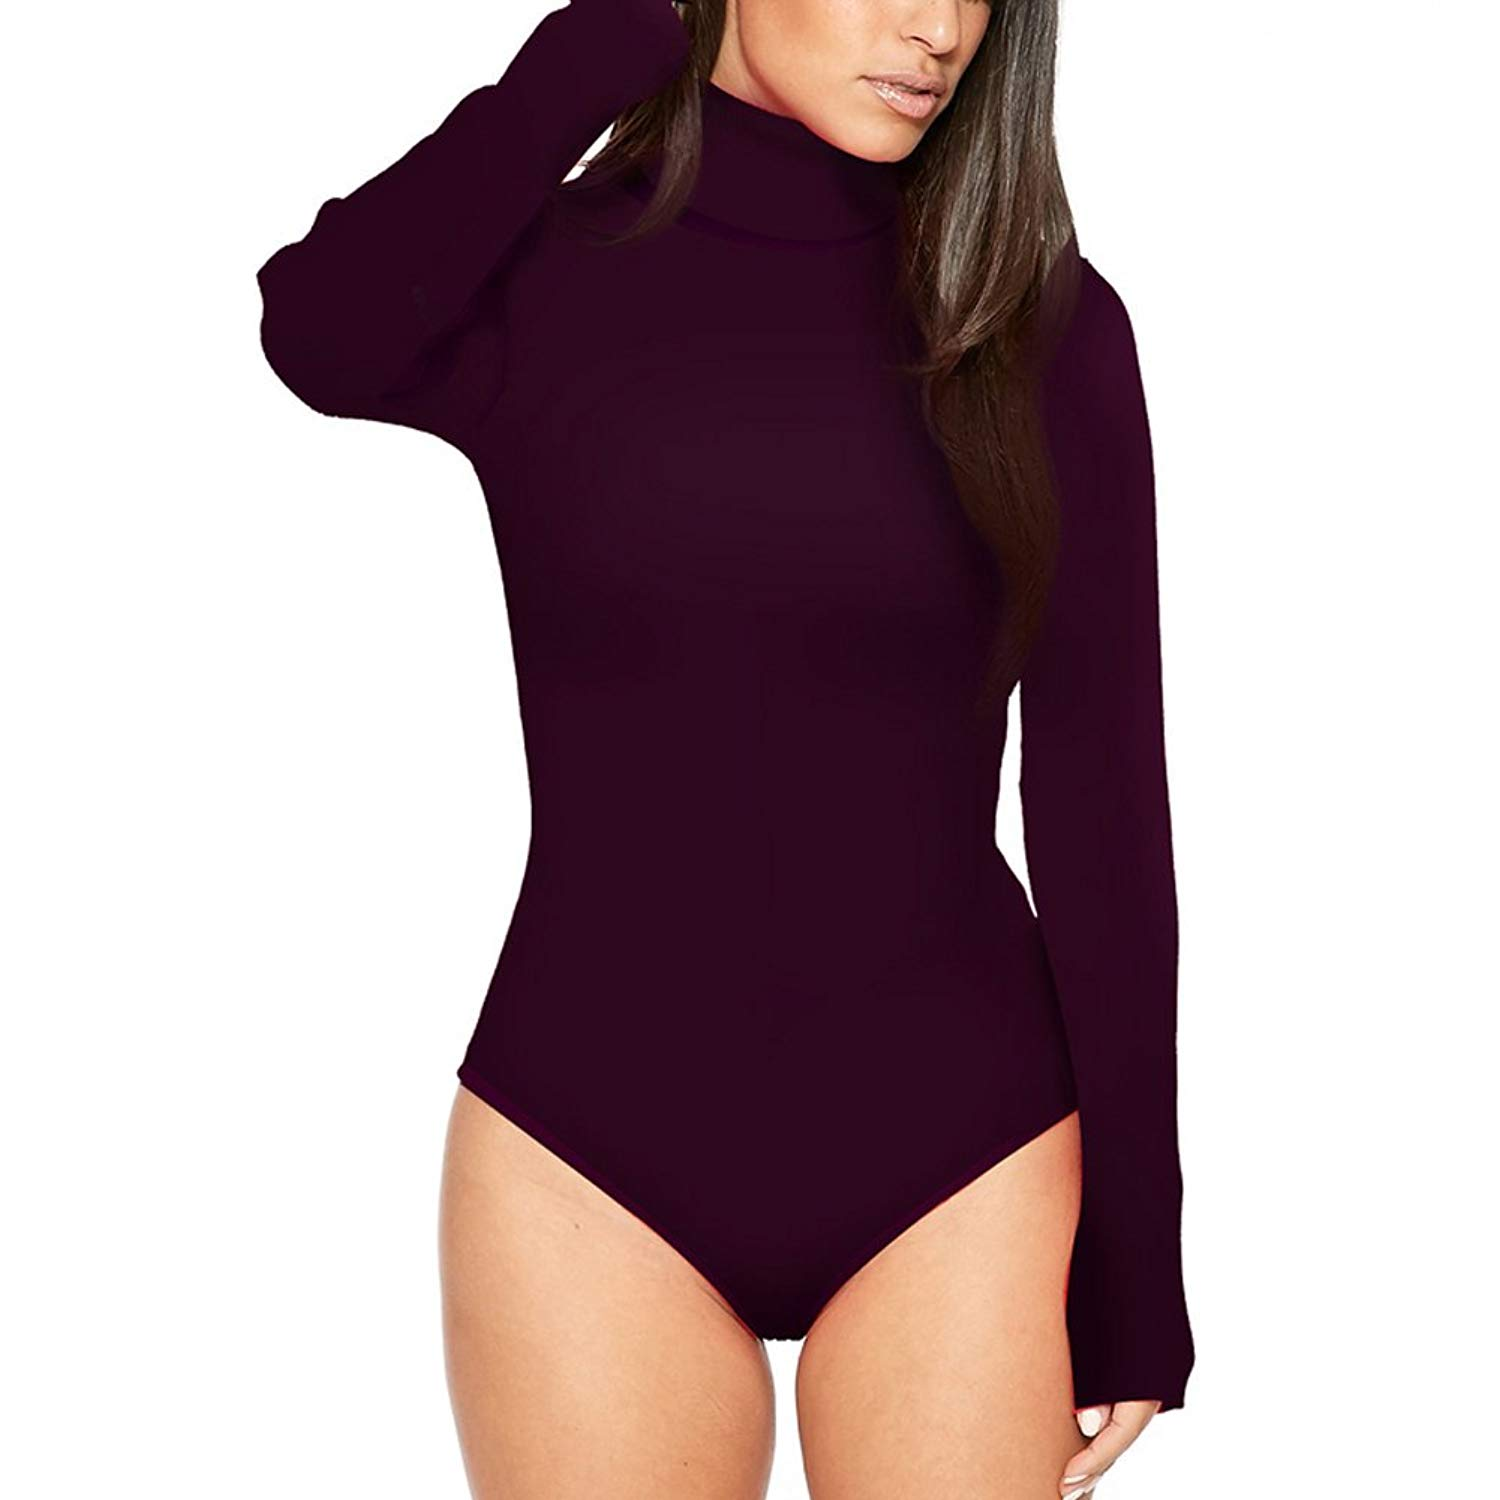 GUCHIS Womens Stretchy Turtleneck Long Sleeve Thong Bodysuit Solid Color  Romper 22b1b7e7a